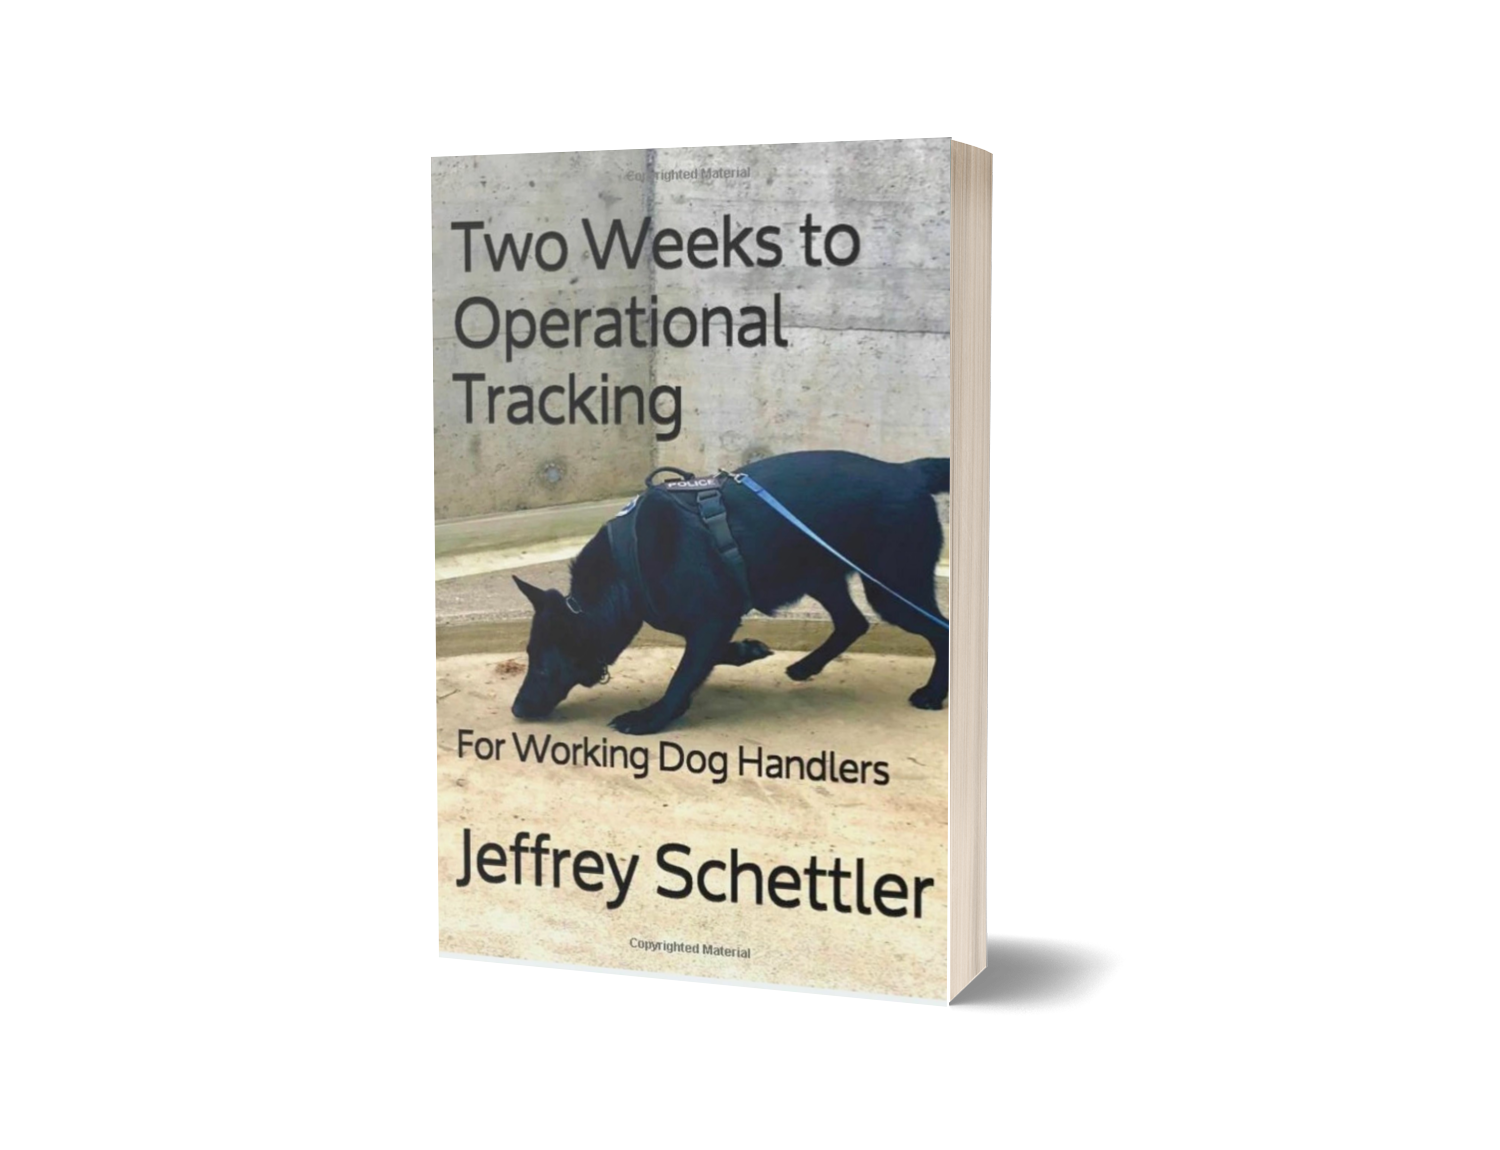 Two Weeks to Operational Tracking